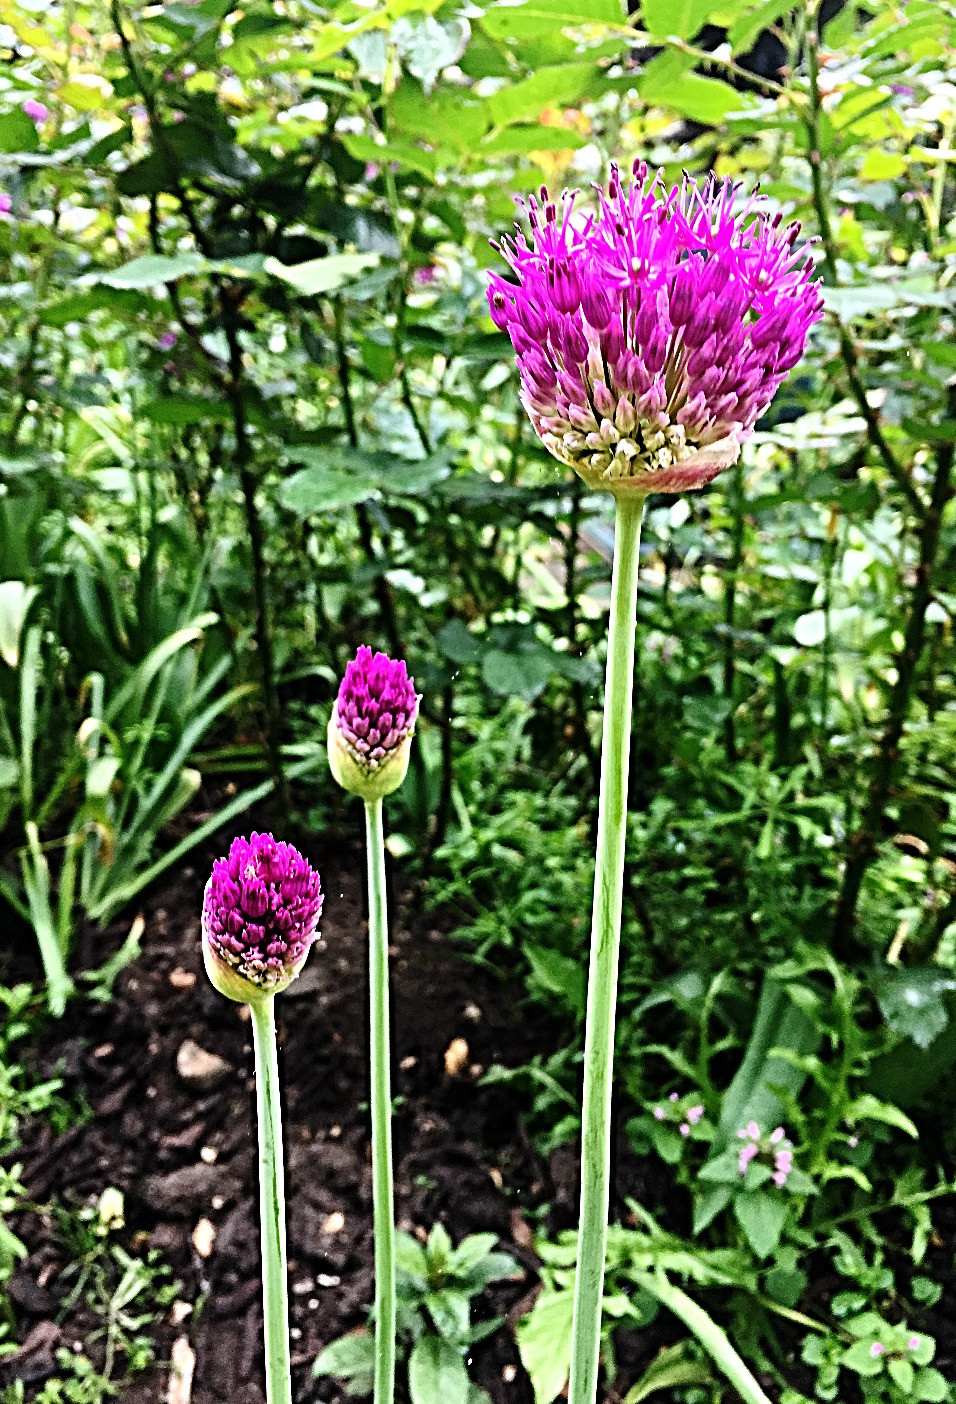 The Jewellery Boat Blog - Allium flowers - www.jewelleryboat.com